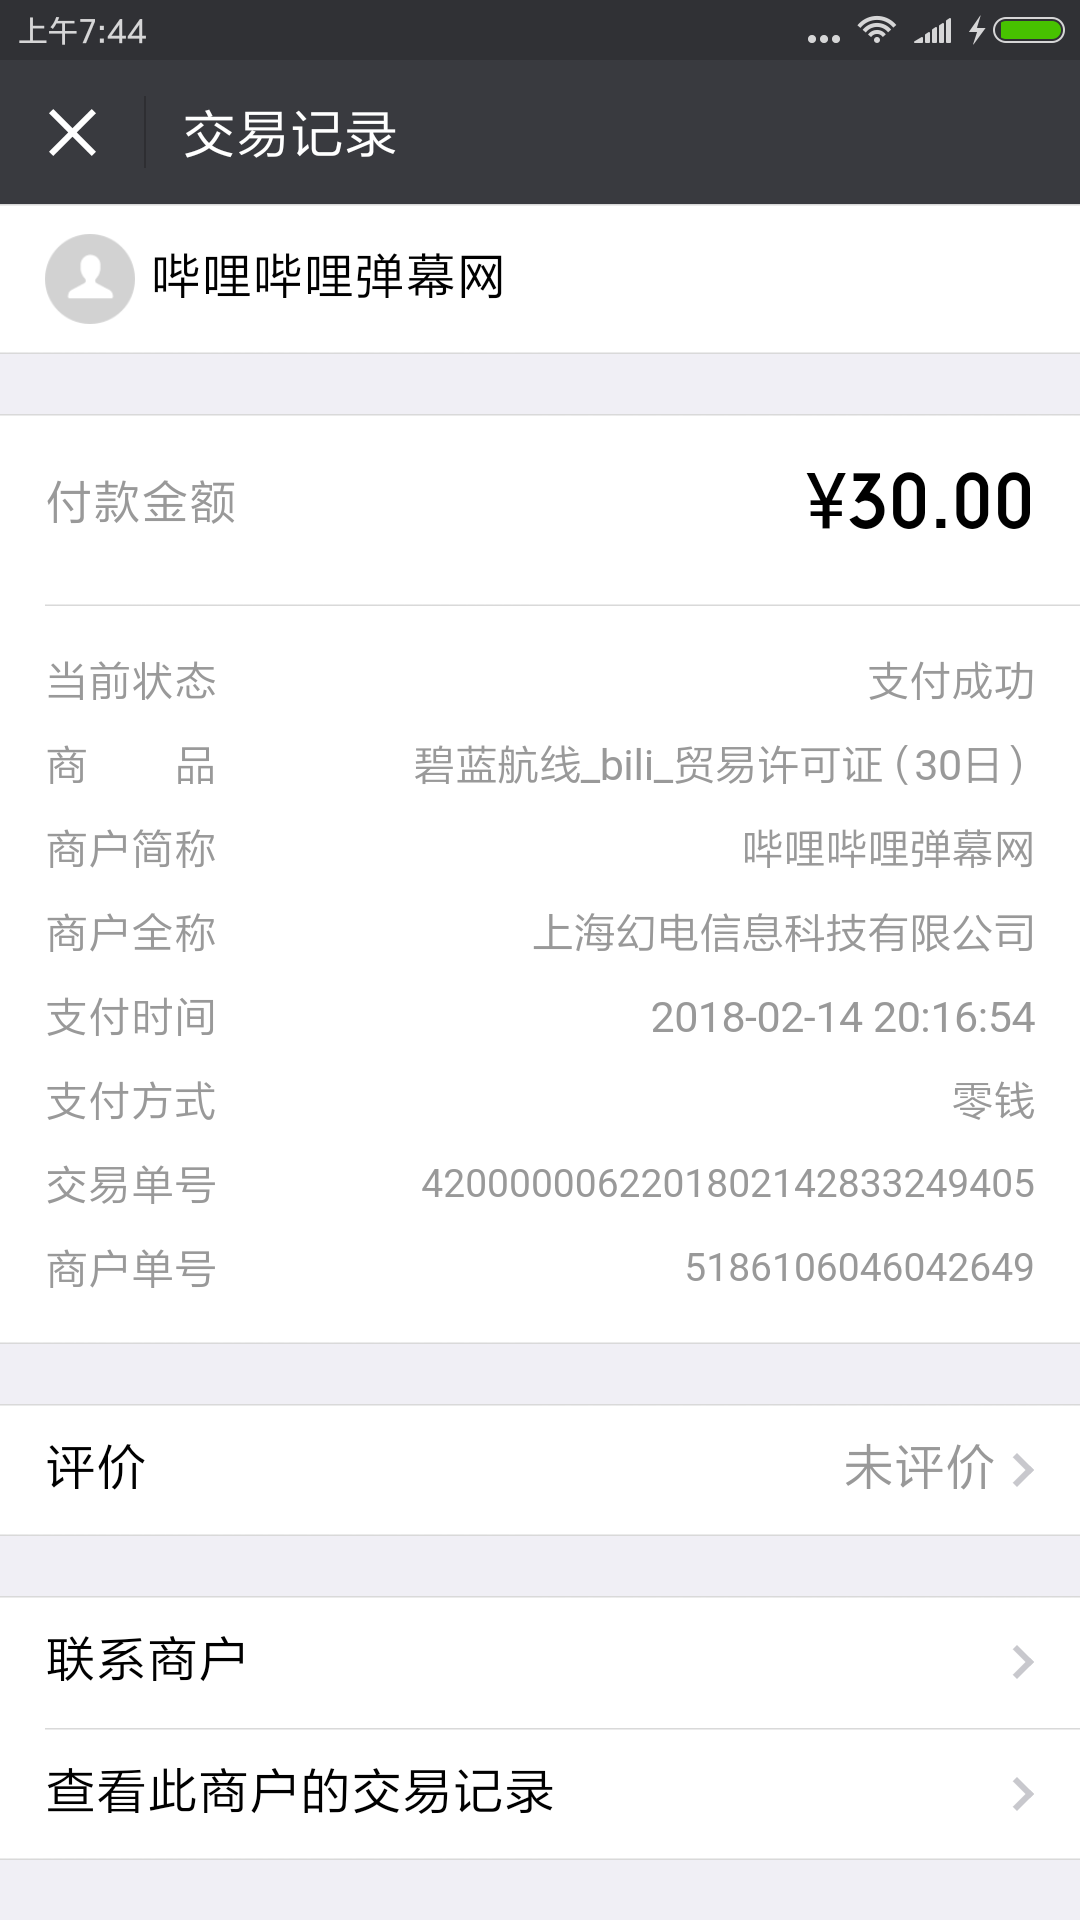 Screenshot_2018-02-22-07-44-14-166_com.tencent.mm.png